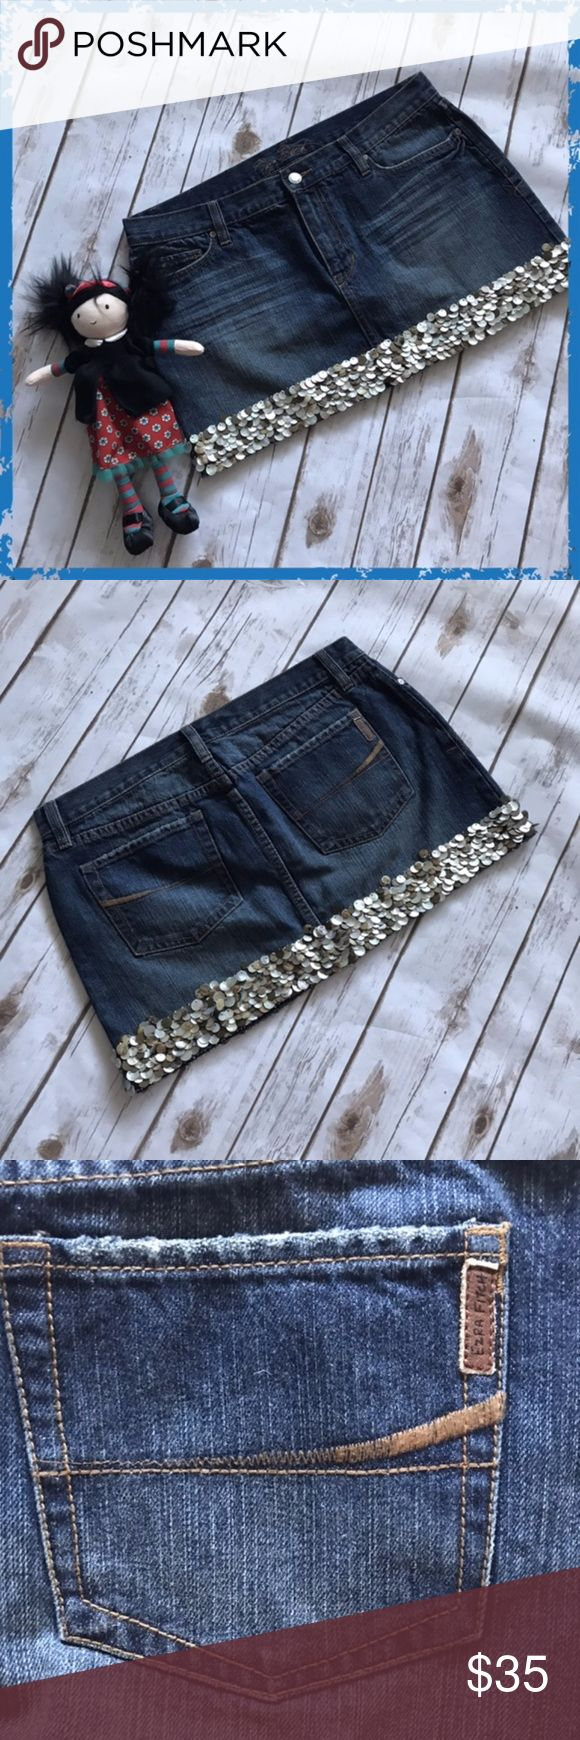 Ezra Fitch Blue Denim Sequined Mini Skirt Size 30 100% cotton, little stretch Mother of pearl sequins at the bottom, all around **Please read first 2 comments** Ezra Fitch Skirts